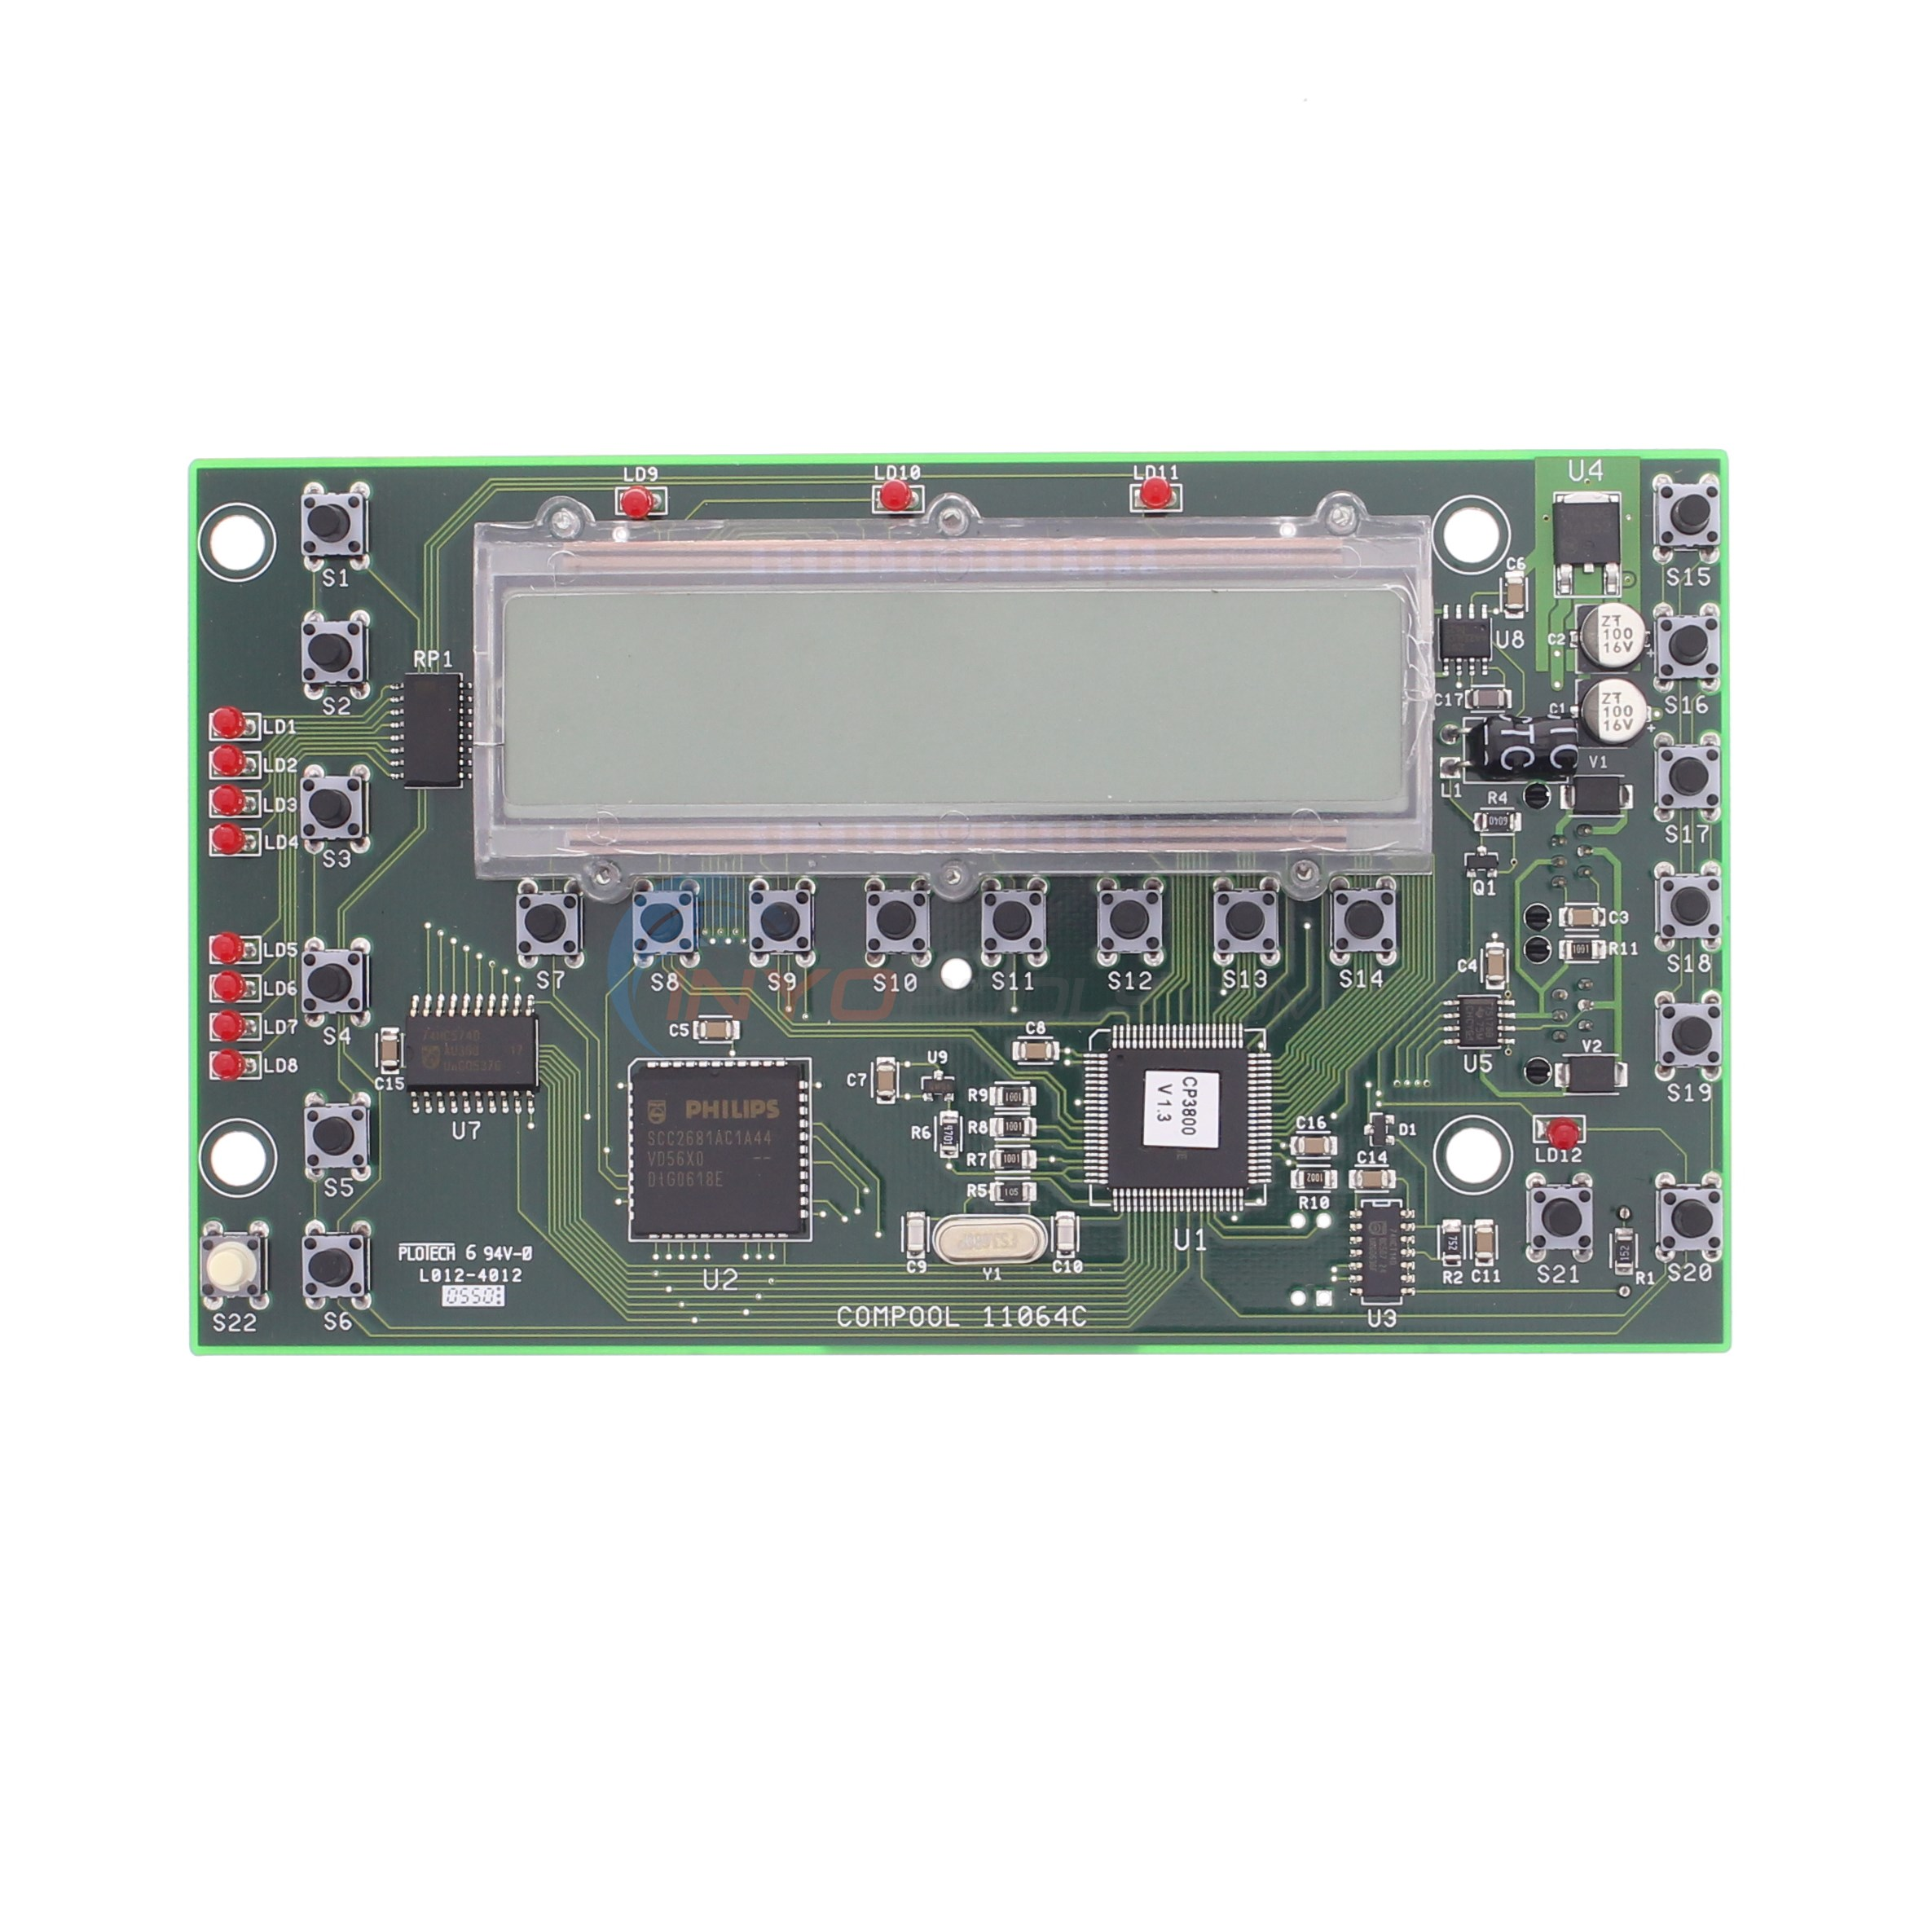 "No Longer Available CIRCUIT BOARD Replace With <a class=""productlink"" href=""http://www.inyopools.com/Products/07501352014365.htm"">9237-52</a>"